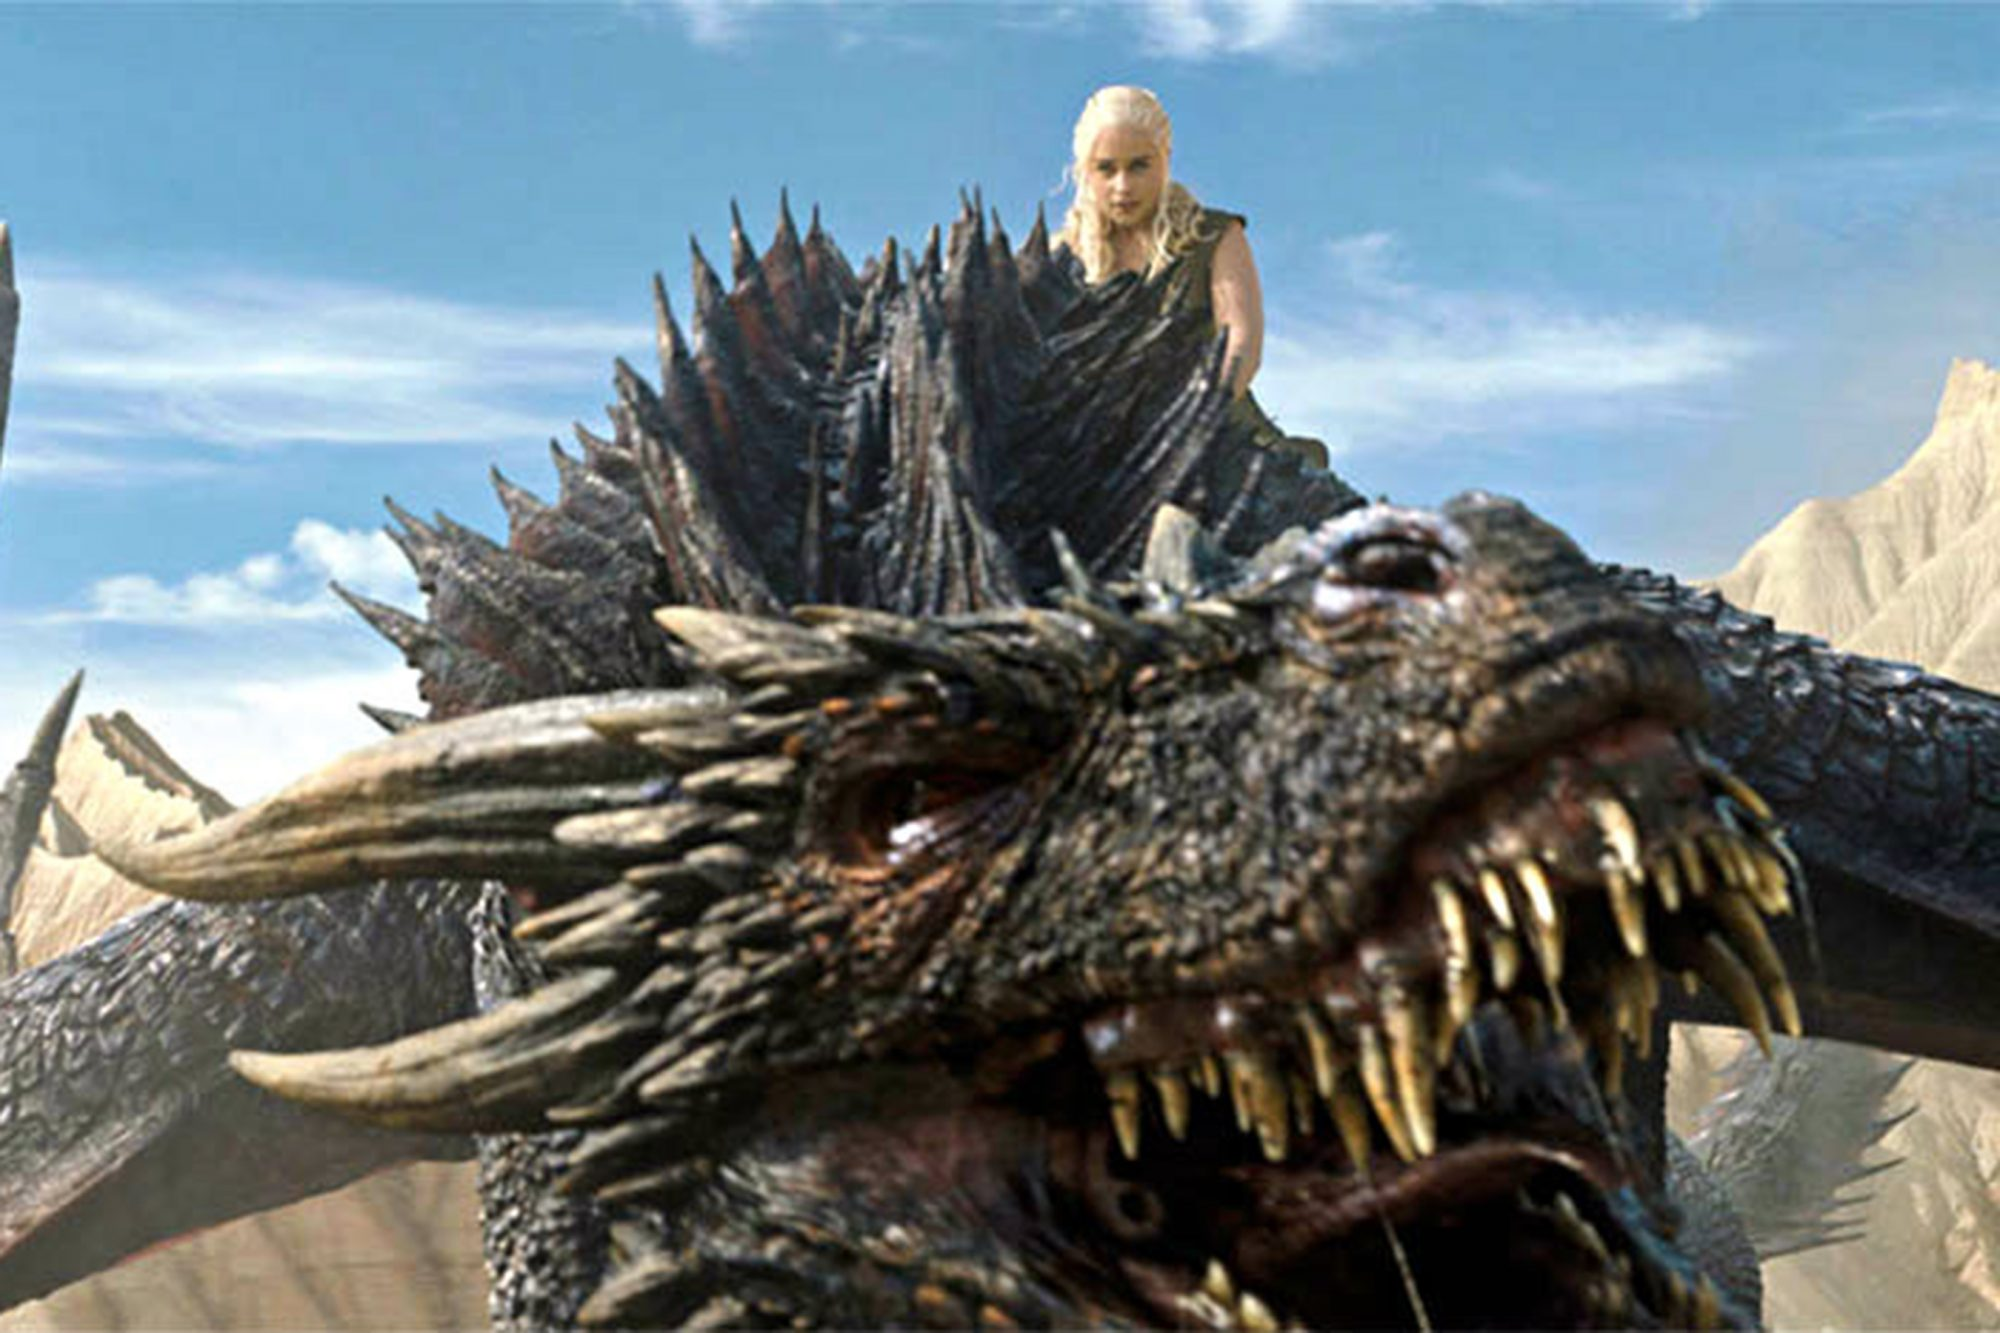 Blood_of_my_blood_Drogon_with_Dany